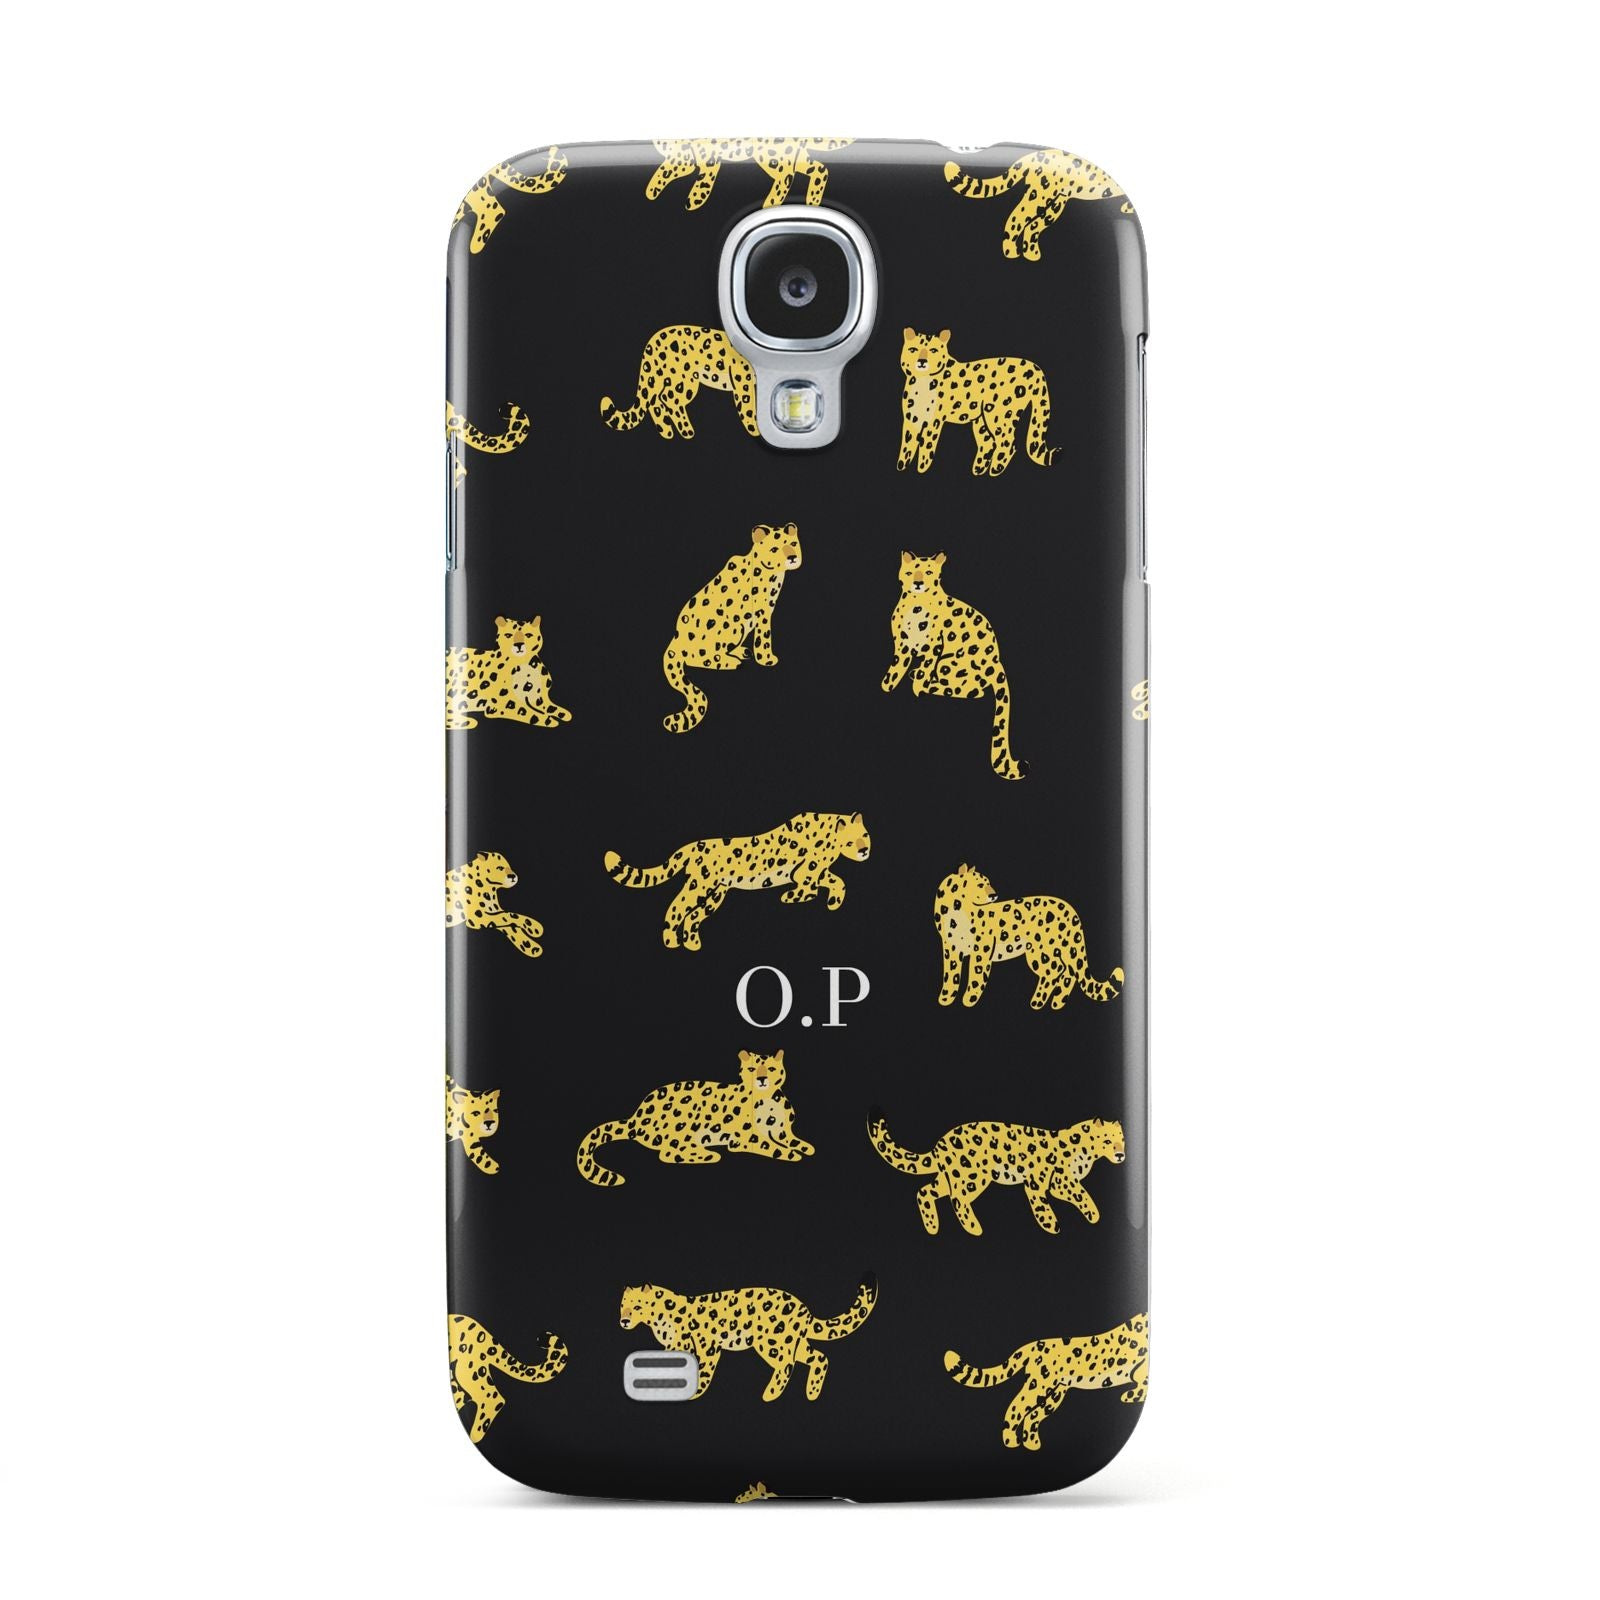 Prowling Leopard Samsung Galaxy S4 Case